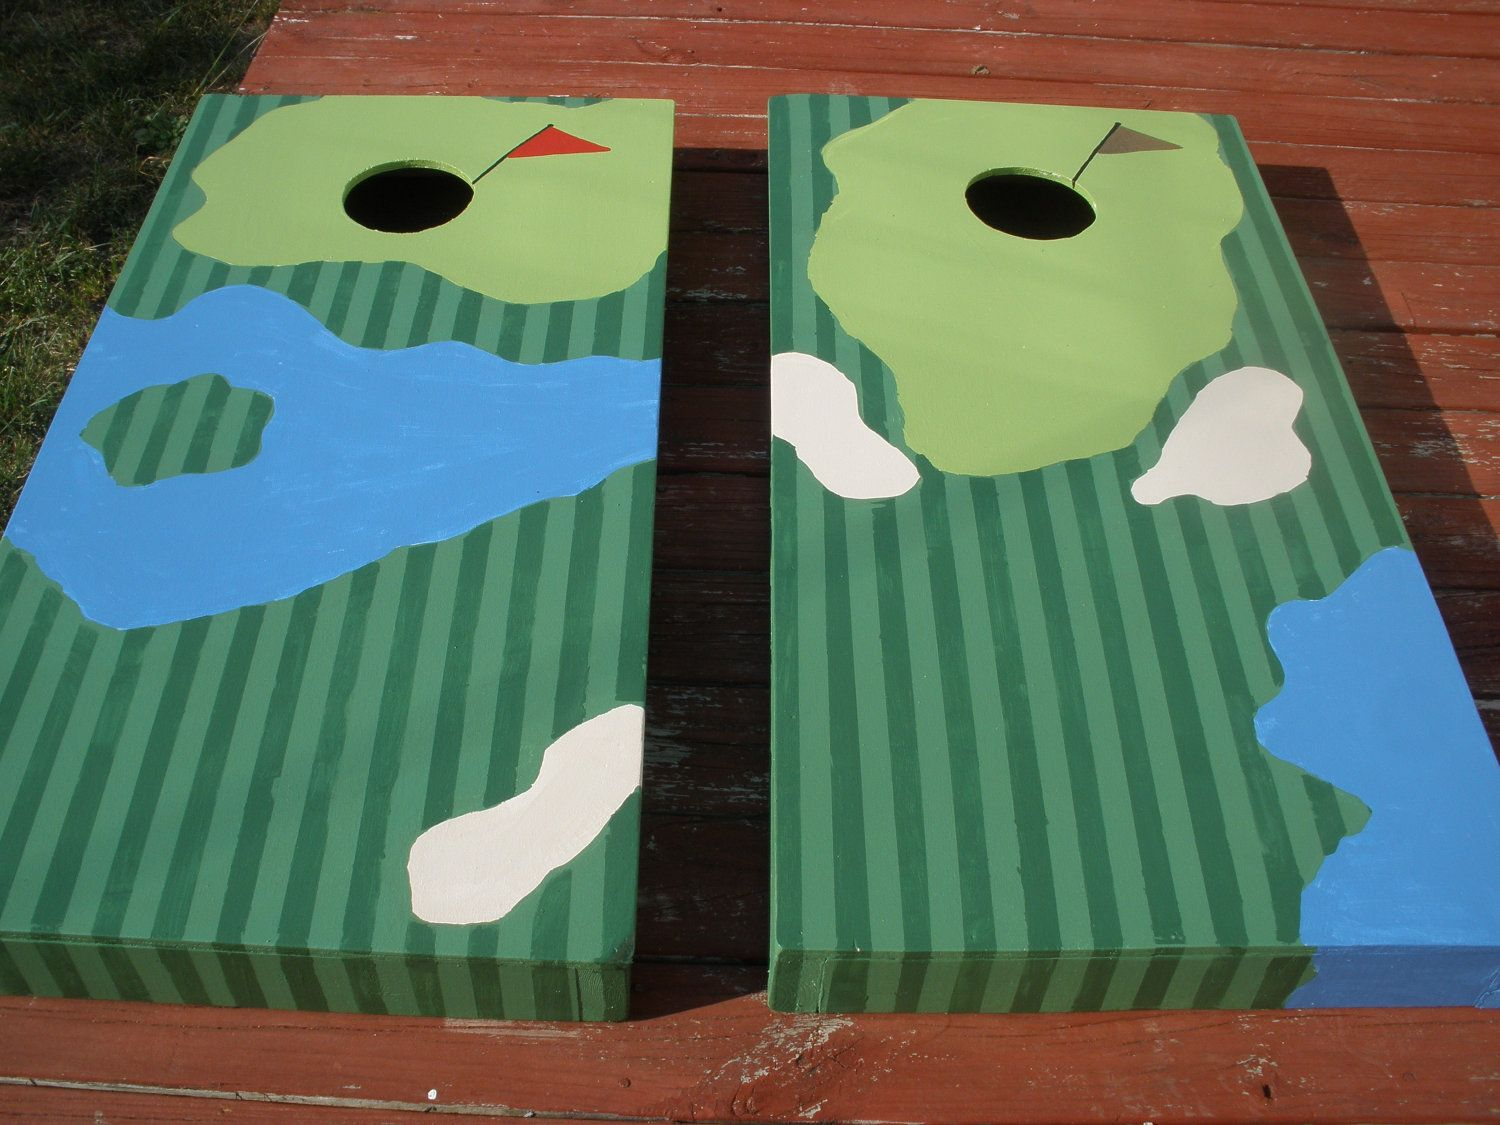 Cornhole Design Ideas america the beautiful ch 001k cornhole set 24x48 custom painted 11 Best Ideas About Corn Hole Shit On Pinterest Red White Blue Bags And Bag Storage